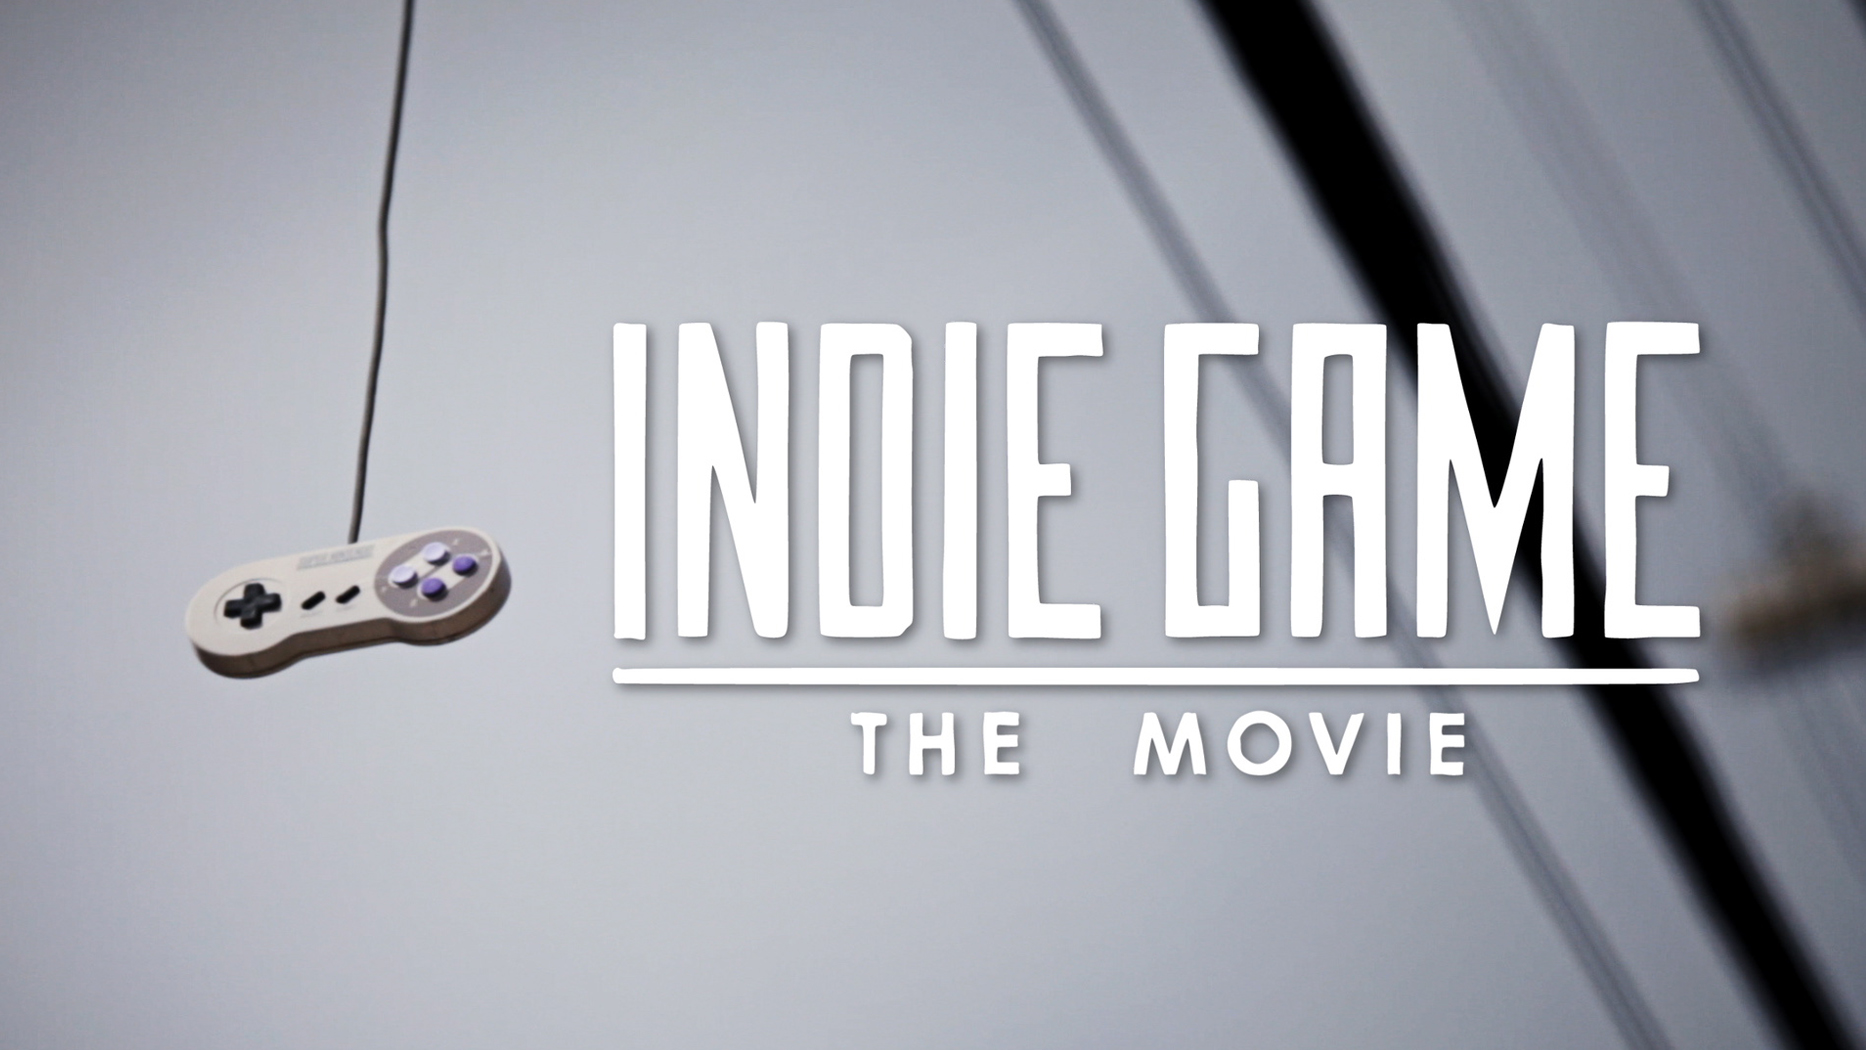 Indie Game: The Movie, the only film I have a t-shirt of.